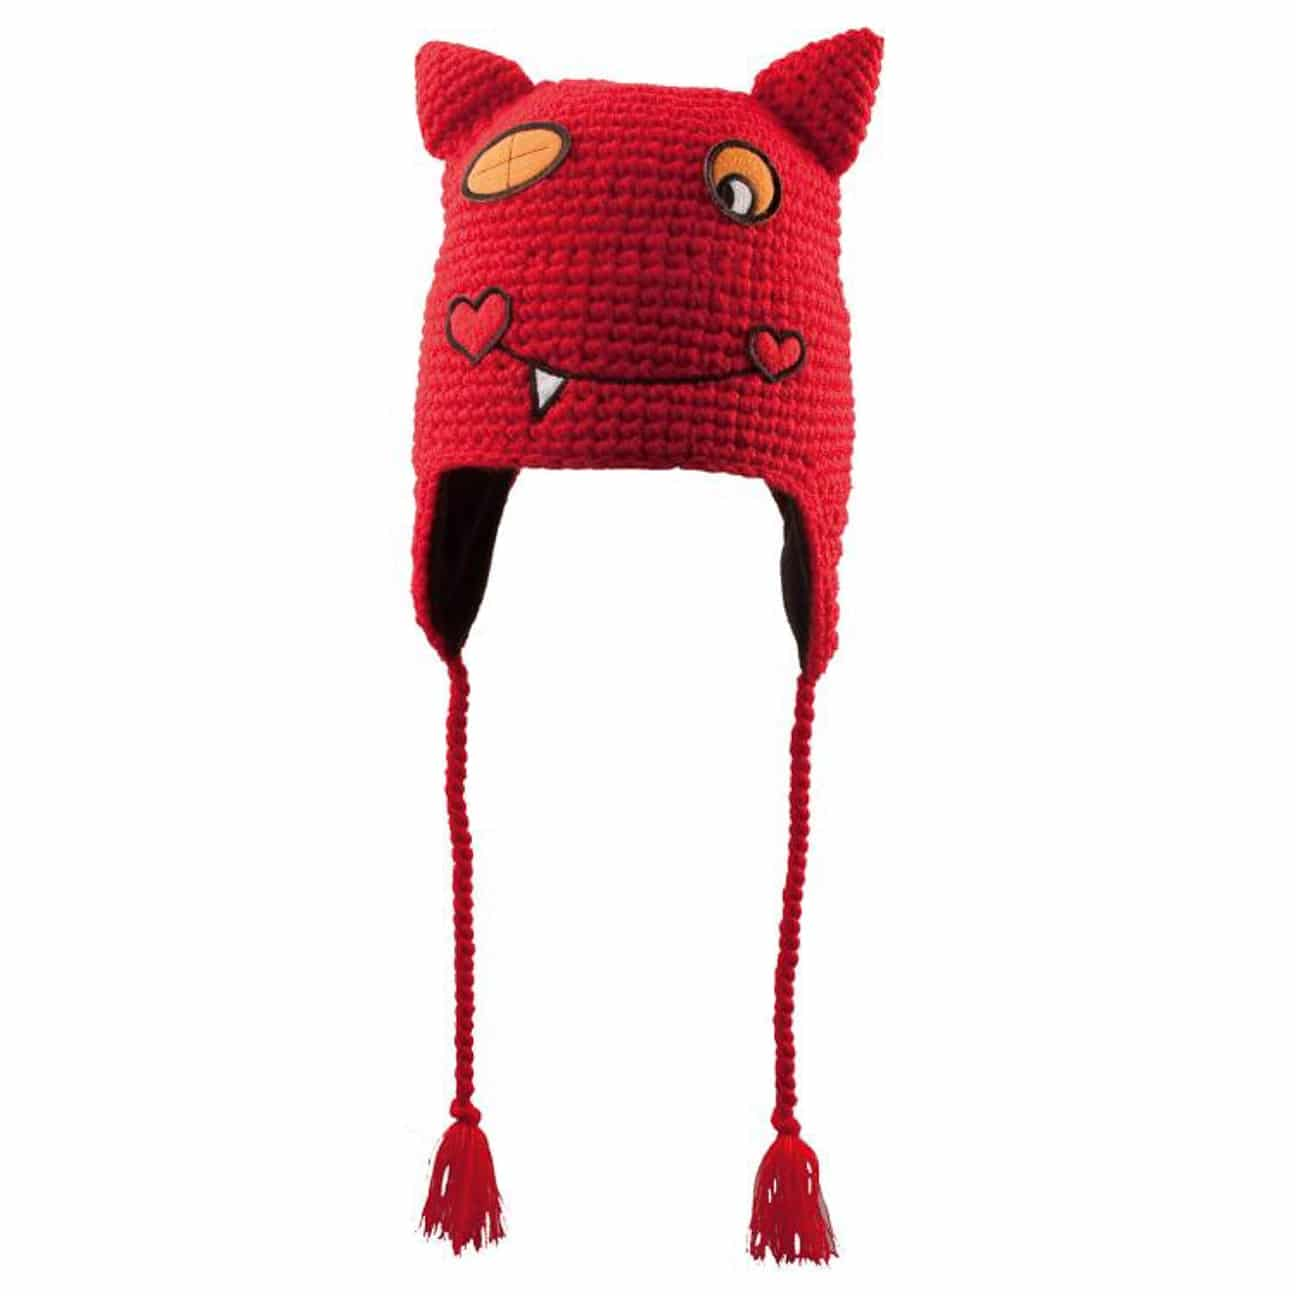 bb818fedcca ... Funny Monster Kids Hat by Chillouts - red 1 ...